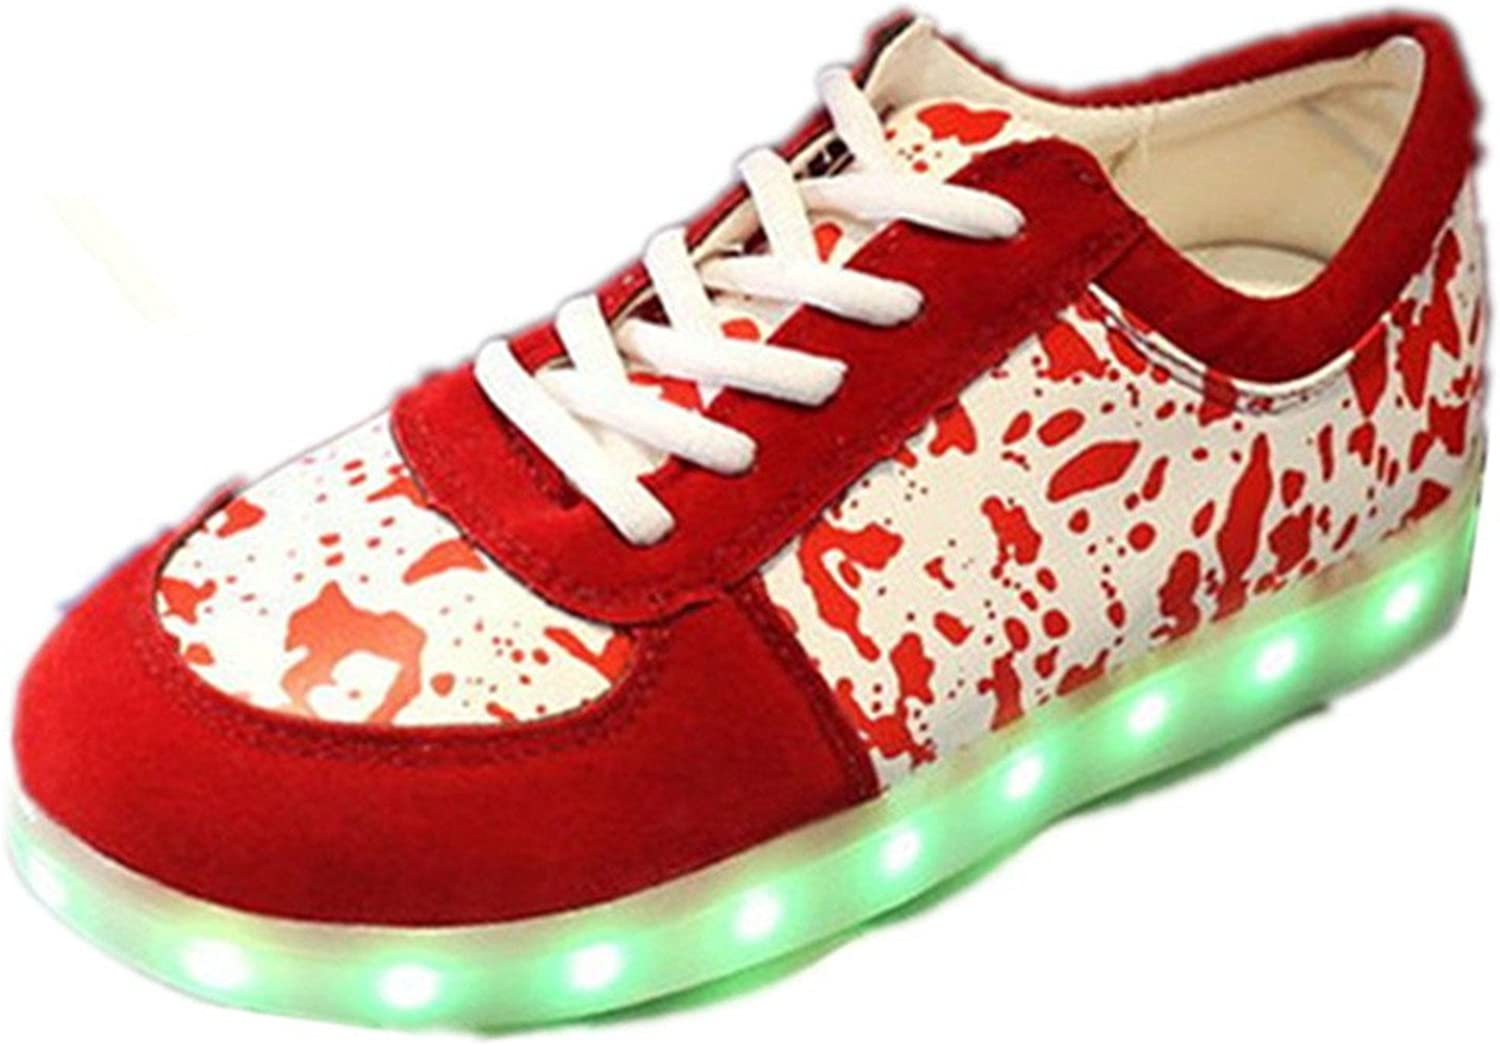 Reinhar Prevailing7 colors LED shoes Men& Women Flashing Fashion Sneakers colorful Glowing Party shoes